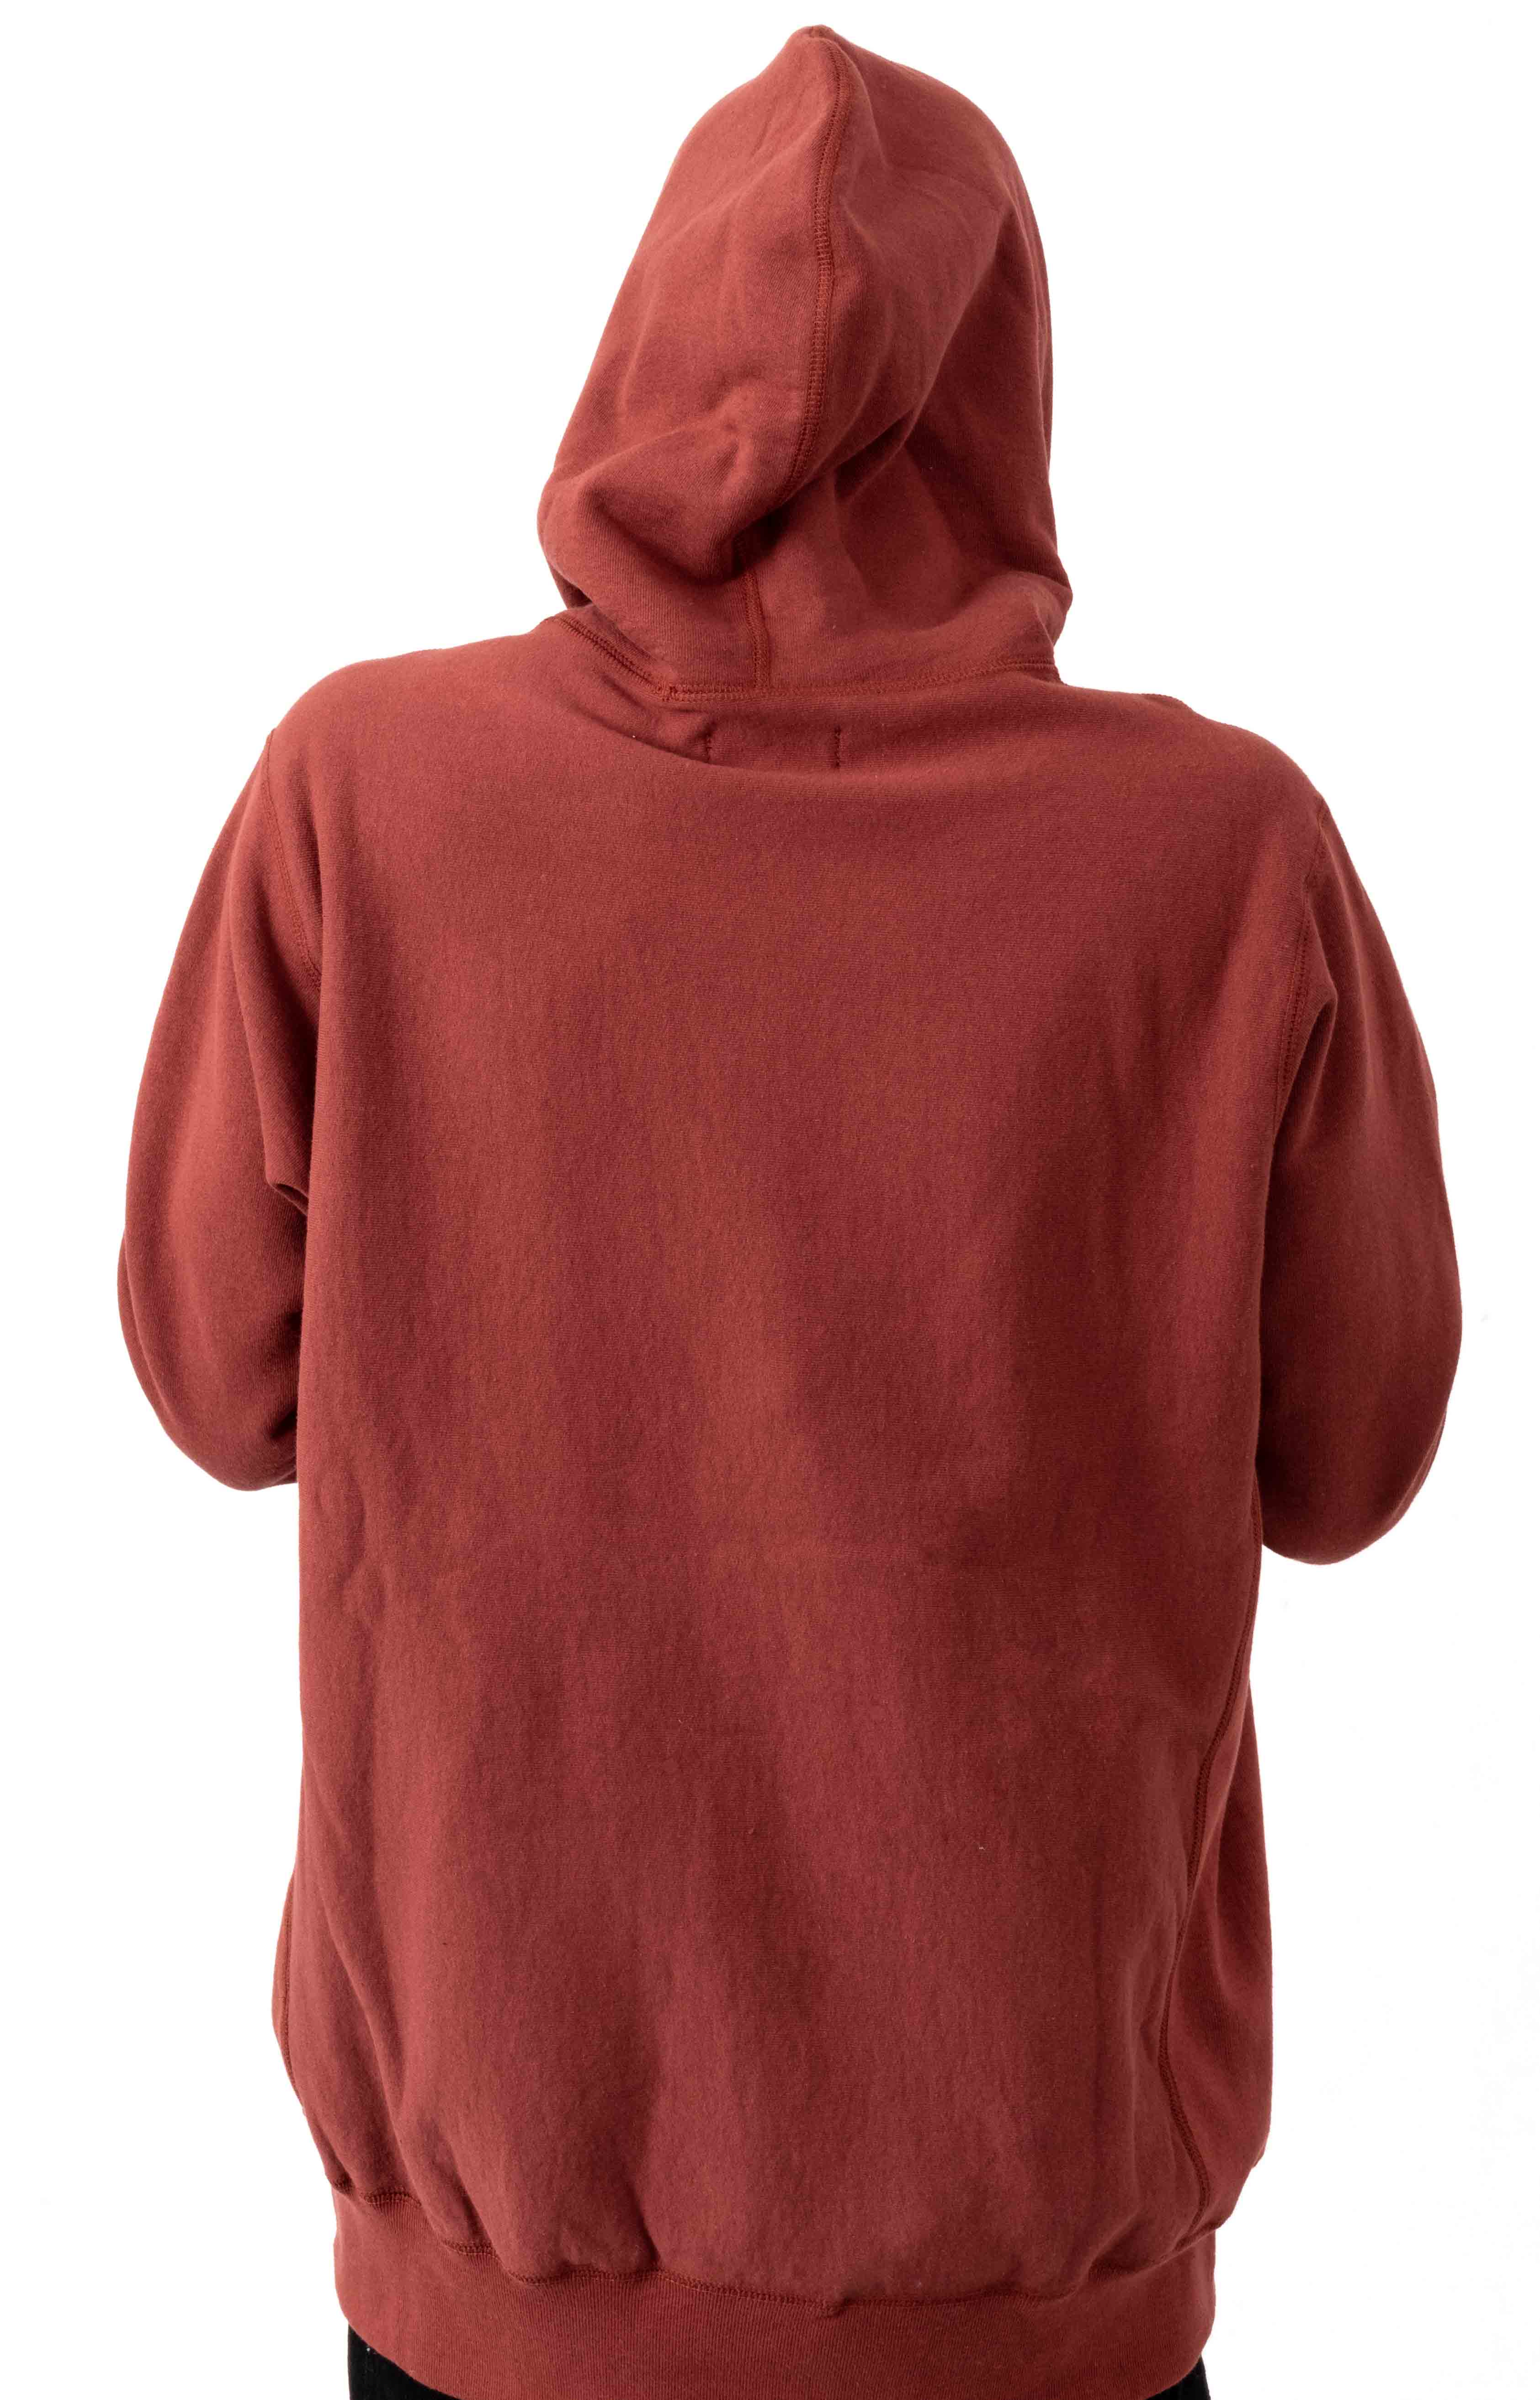 PVC Logo Pullover Hoodie - Congo Red 3